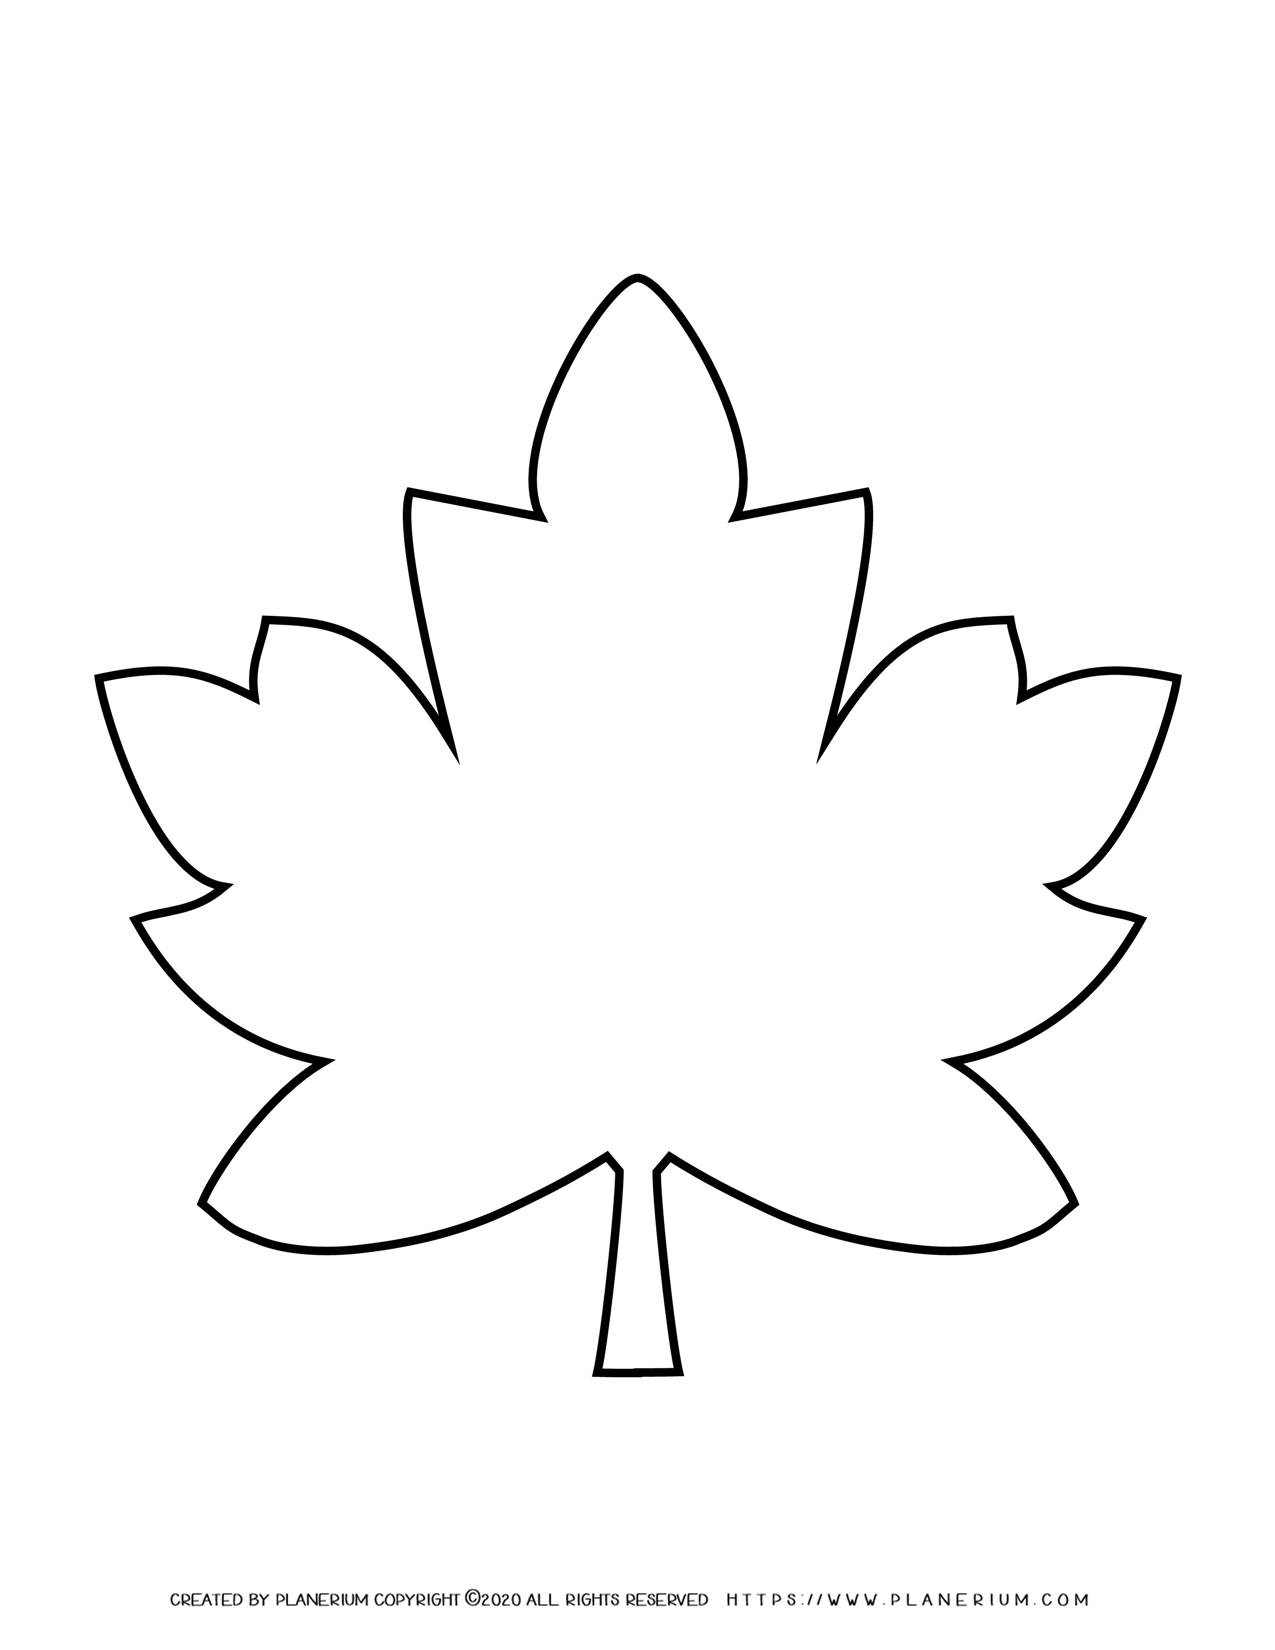 Fall Season - Coloring Page - Maple Leaf Template